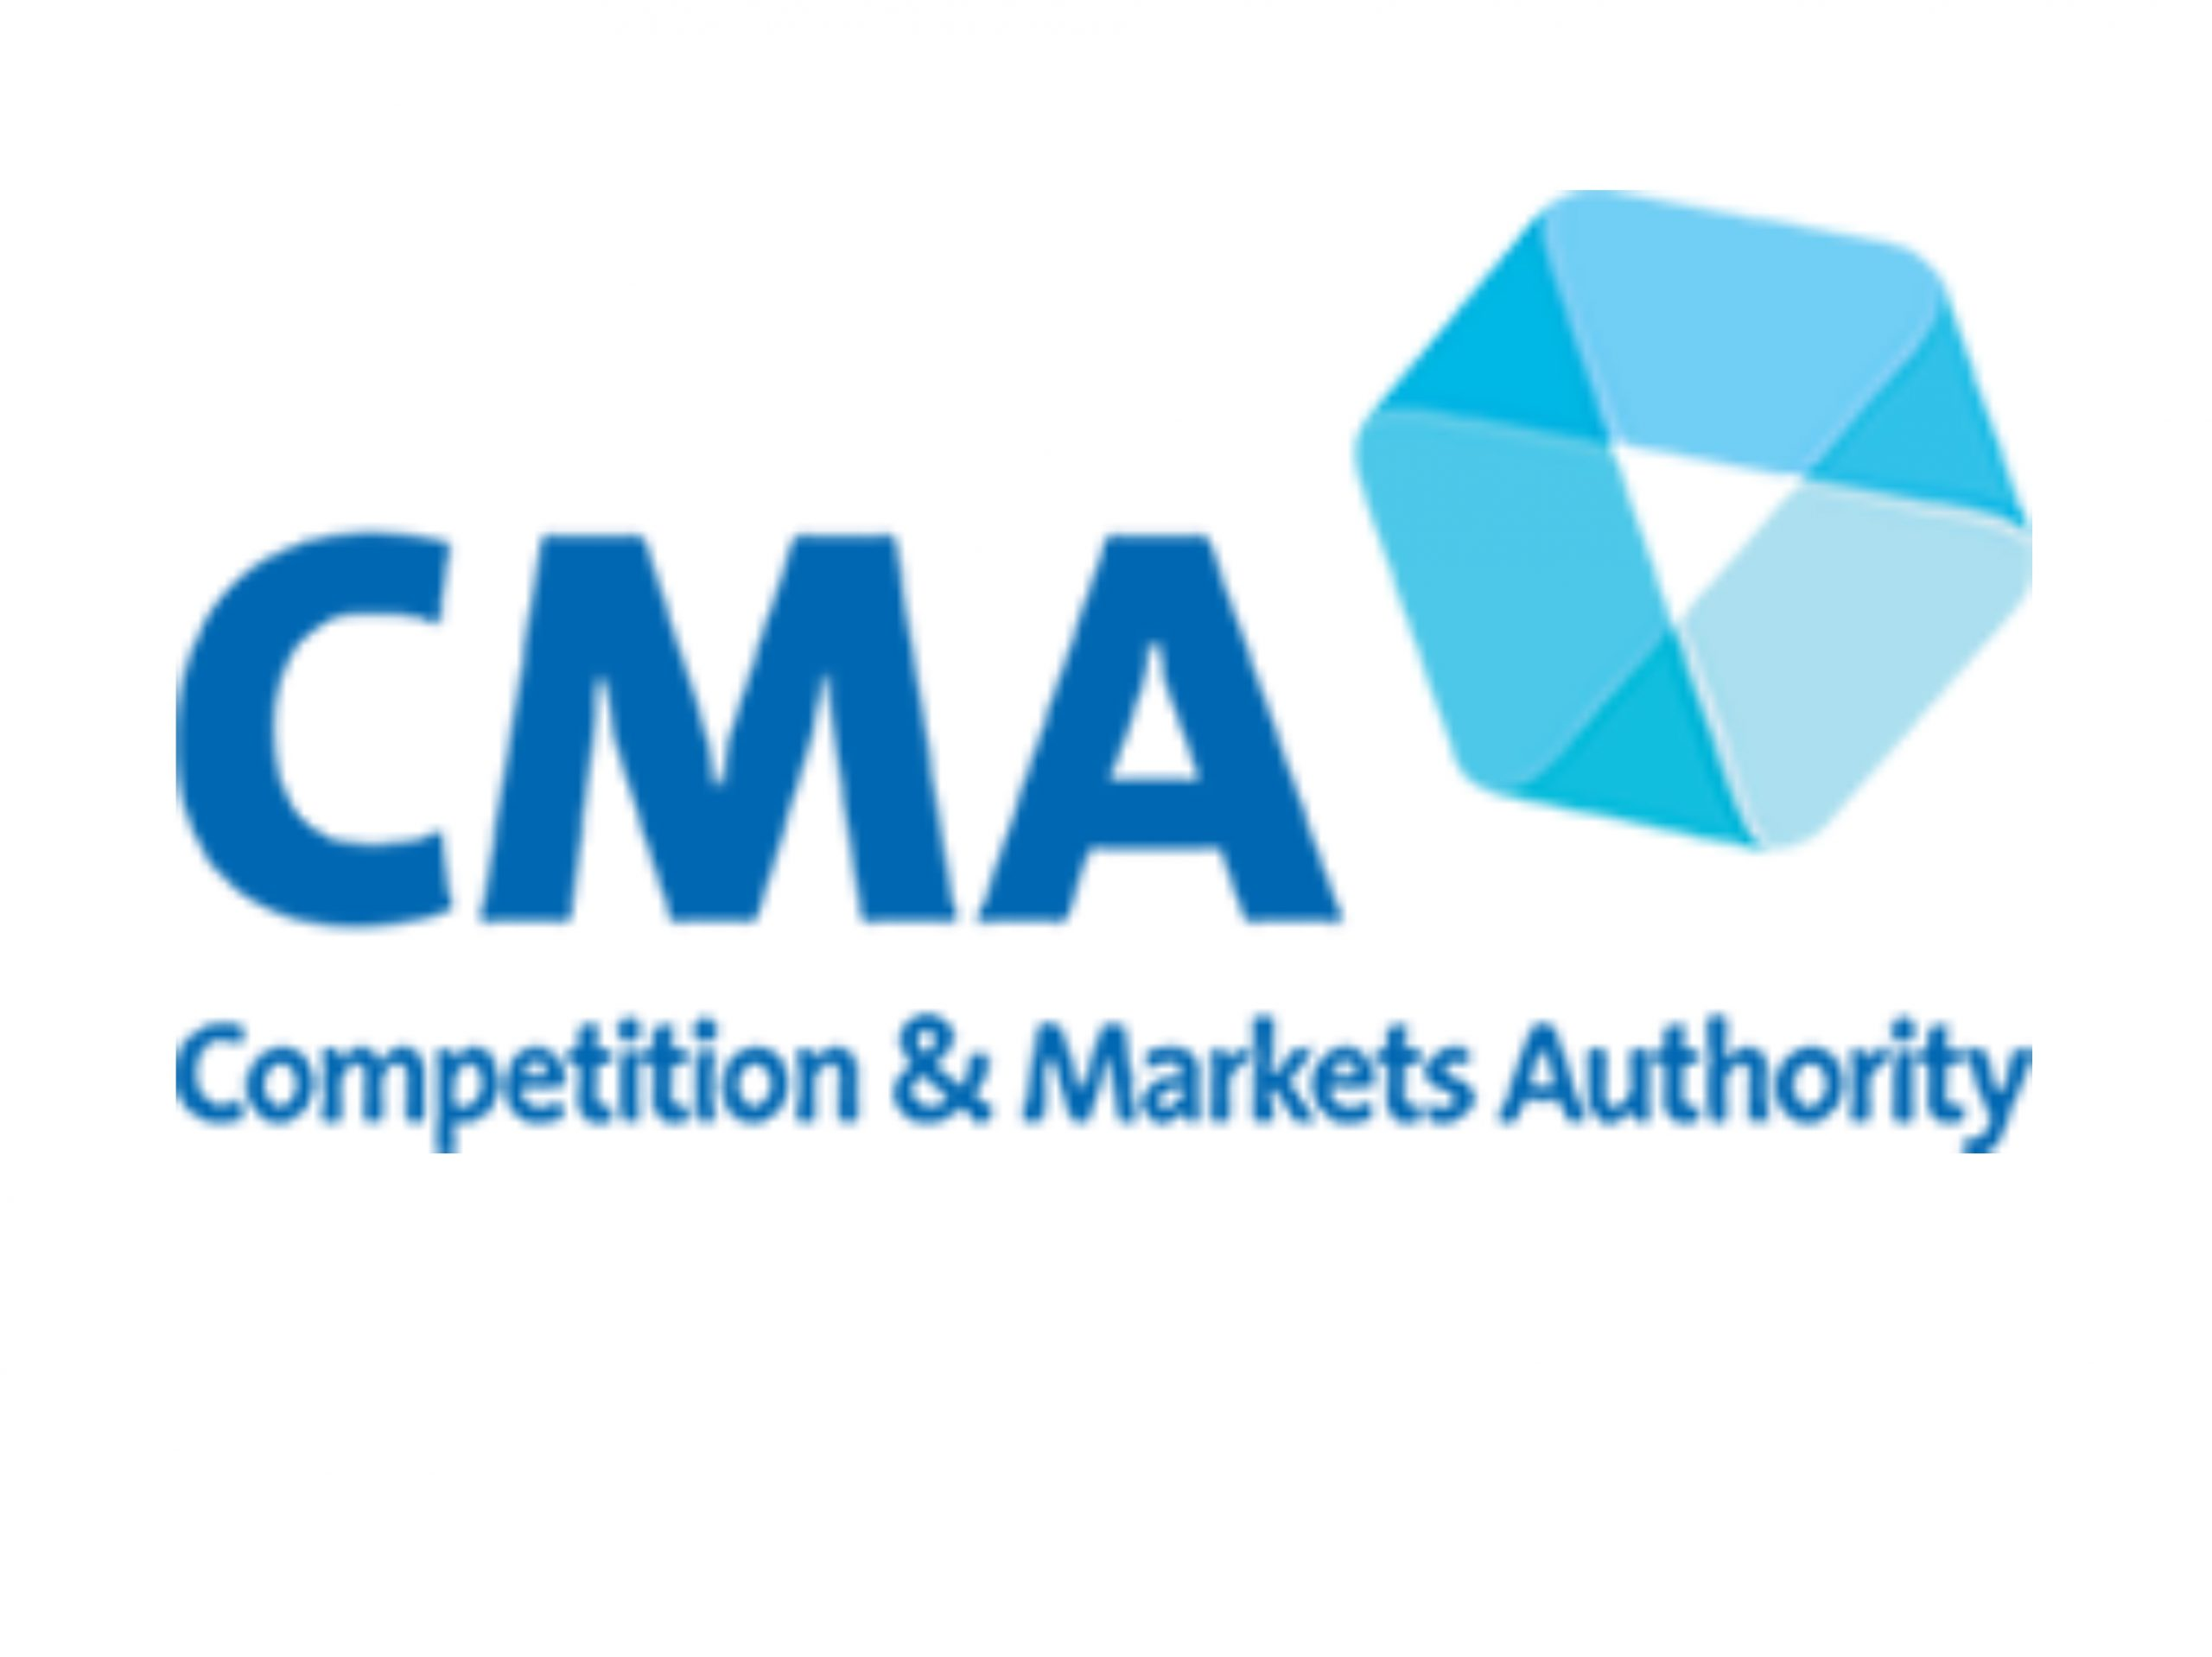 CMA's Updated Guide for Businesses on Compliance to Competition Law